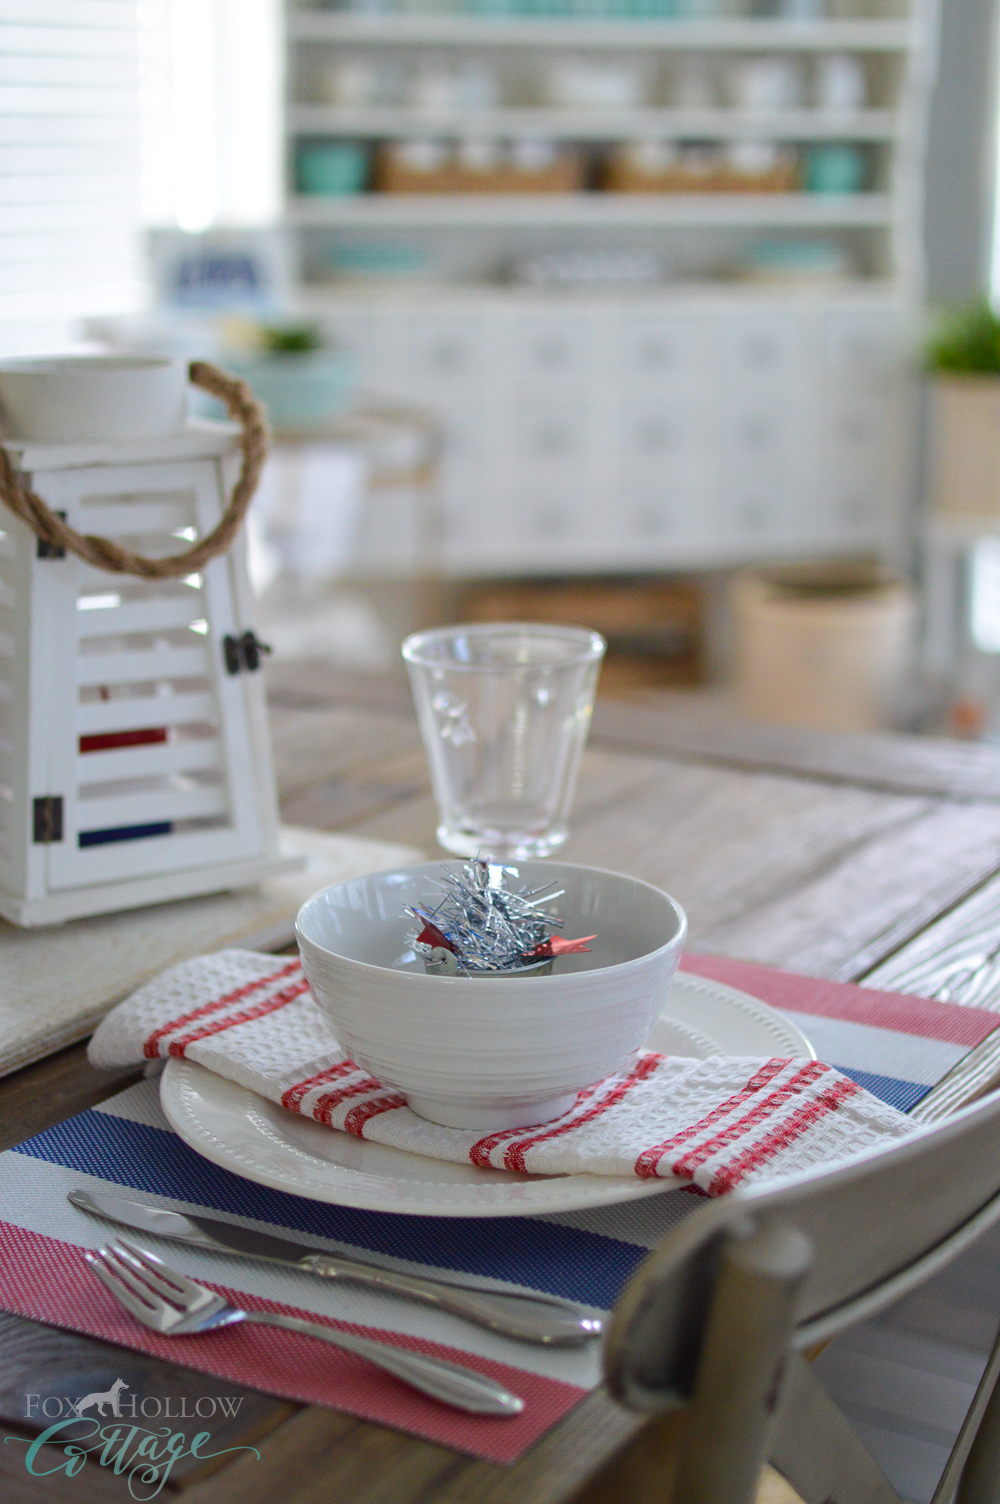 Simple 4th of July Table Decorating Ideas at foxhollowcottage.com with affordable Dollar Tree items